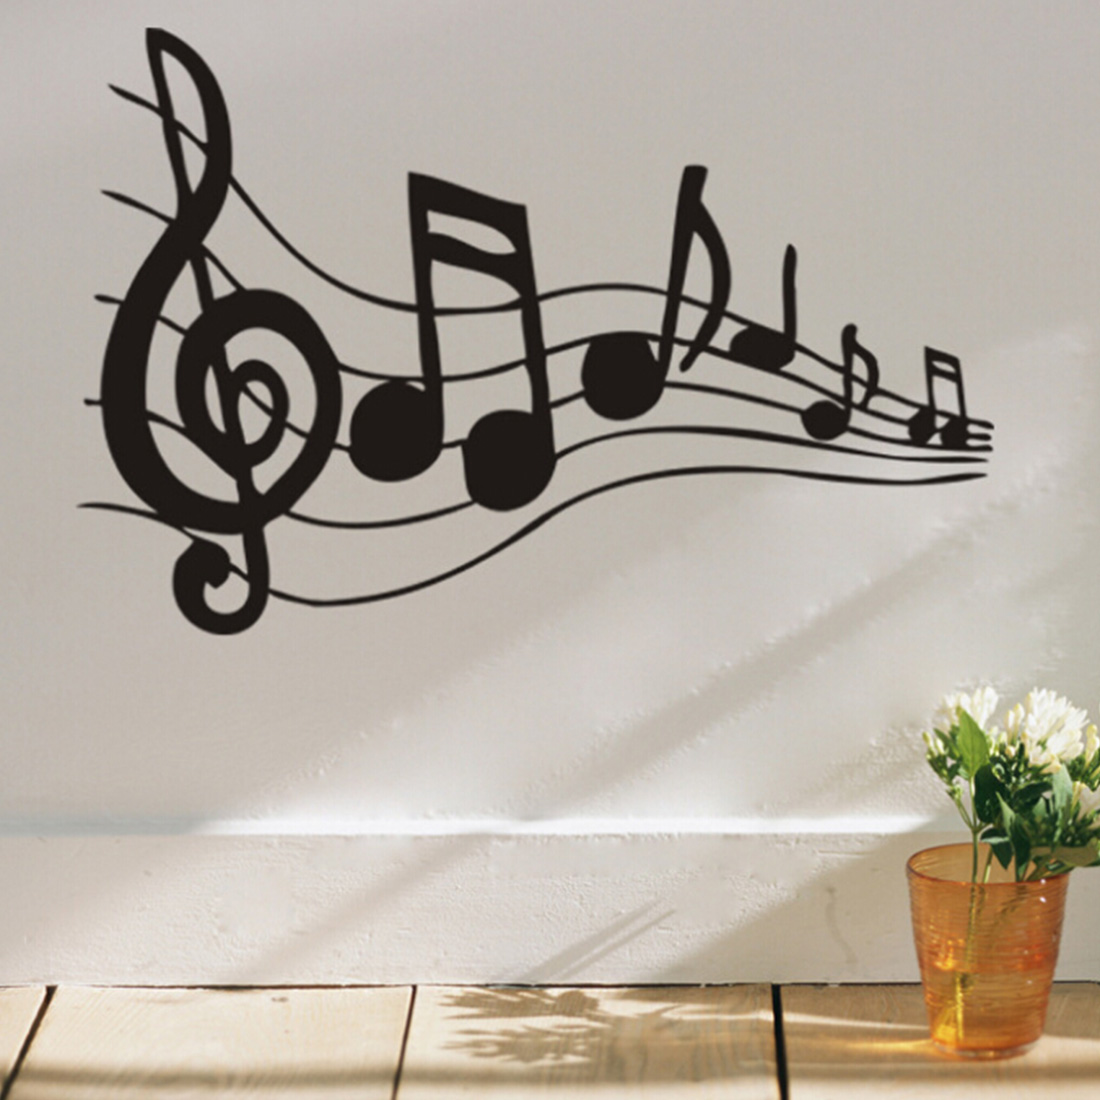 Free Shipping Hotsale Wall Home Decor Vinyl Decal Removable Sticker Paper Music Note Pattern Graffiti